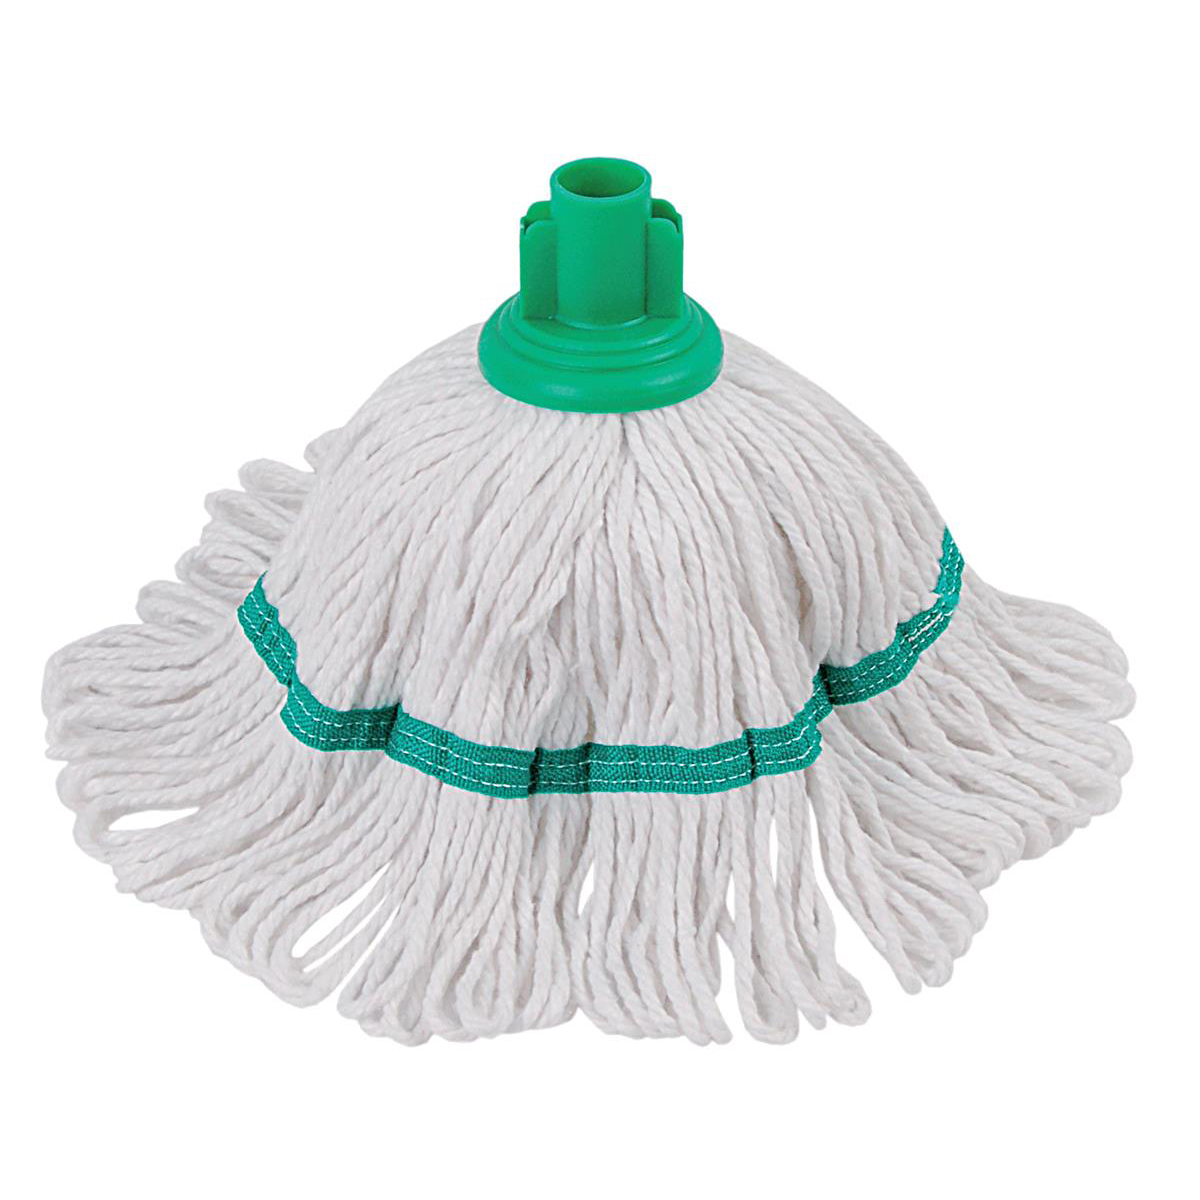 Mops & Buckets Robert Scott & Sons Hygiemix T1 Socket Cotton & Synthetic Colour-coded Mop 200g Green Ref MHH200G